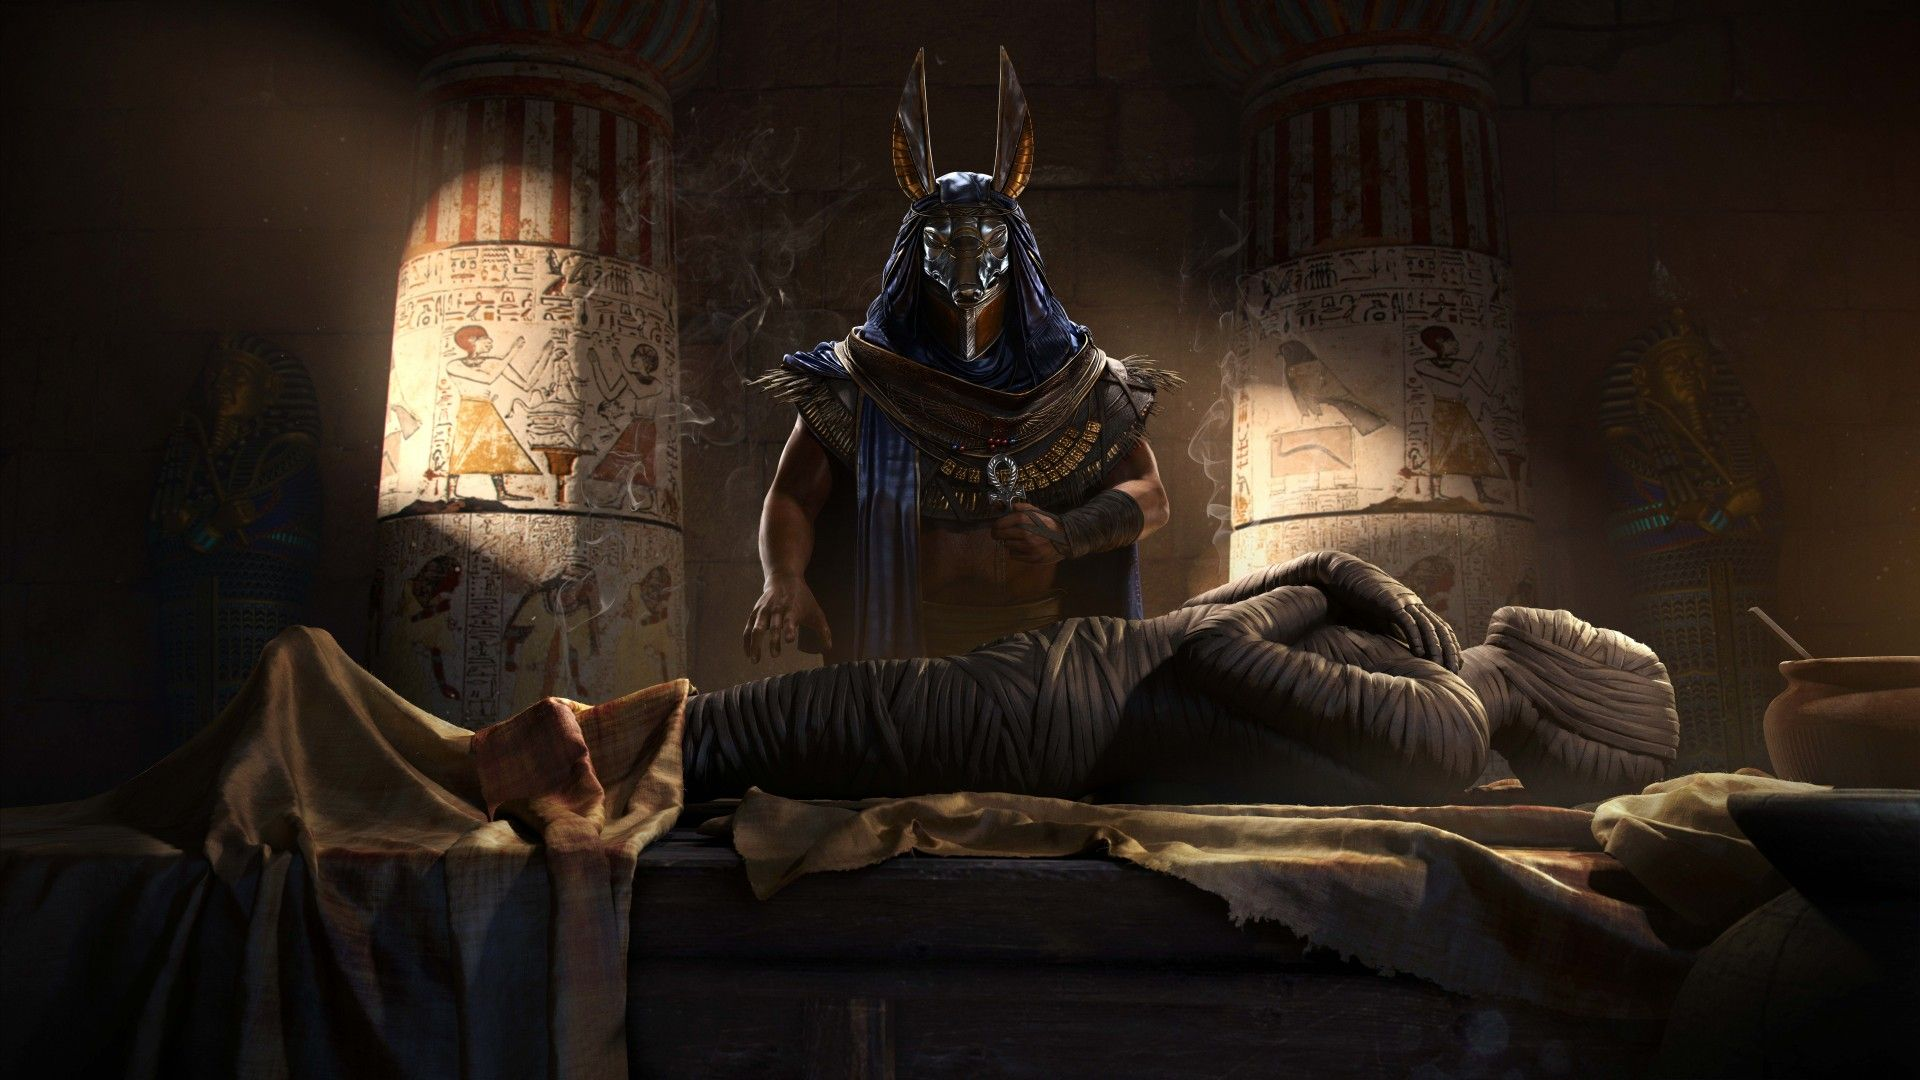 Download Wallpapers Of Assassin S Creed Origins Mummy Egypt 4k